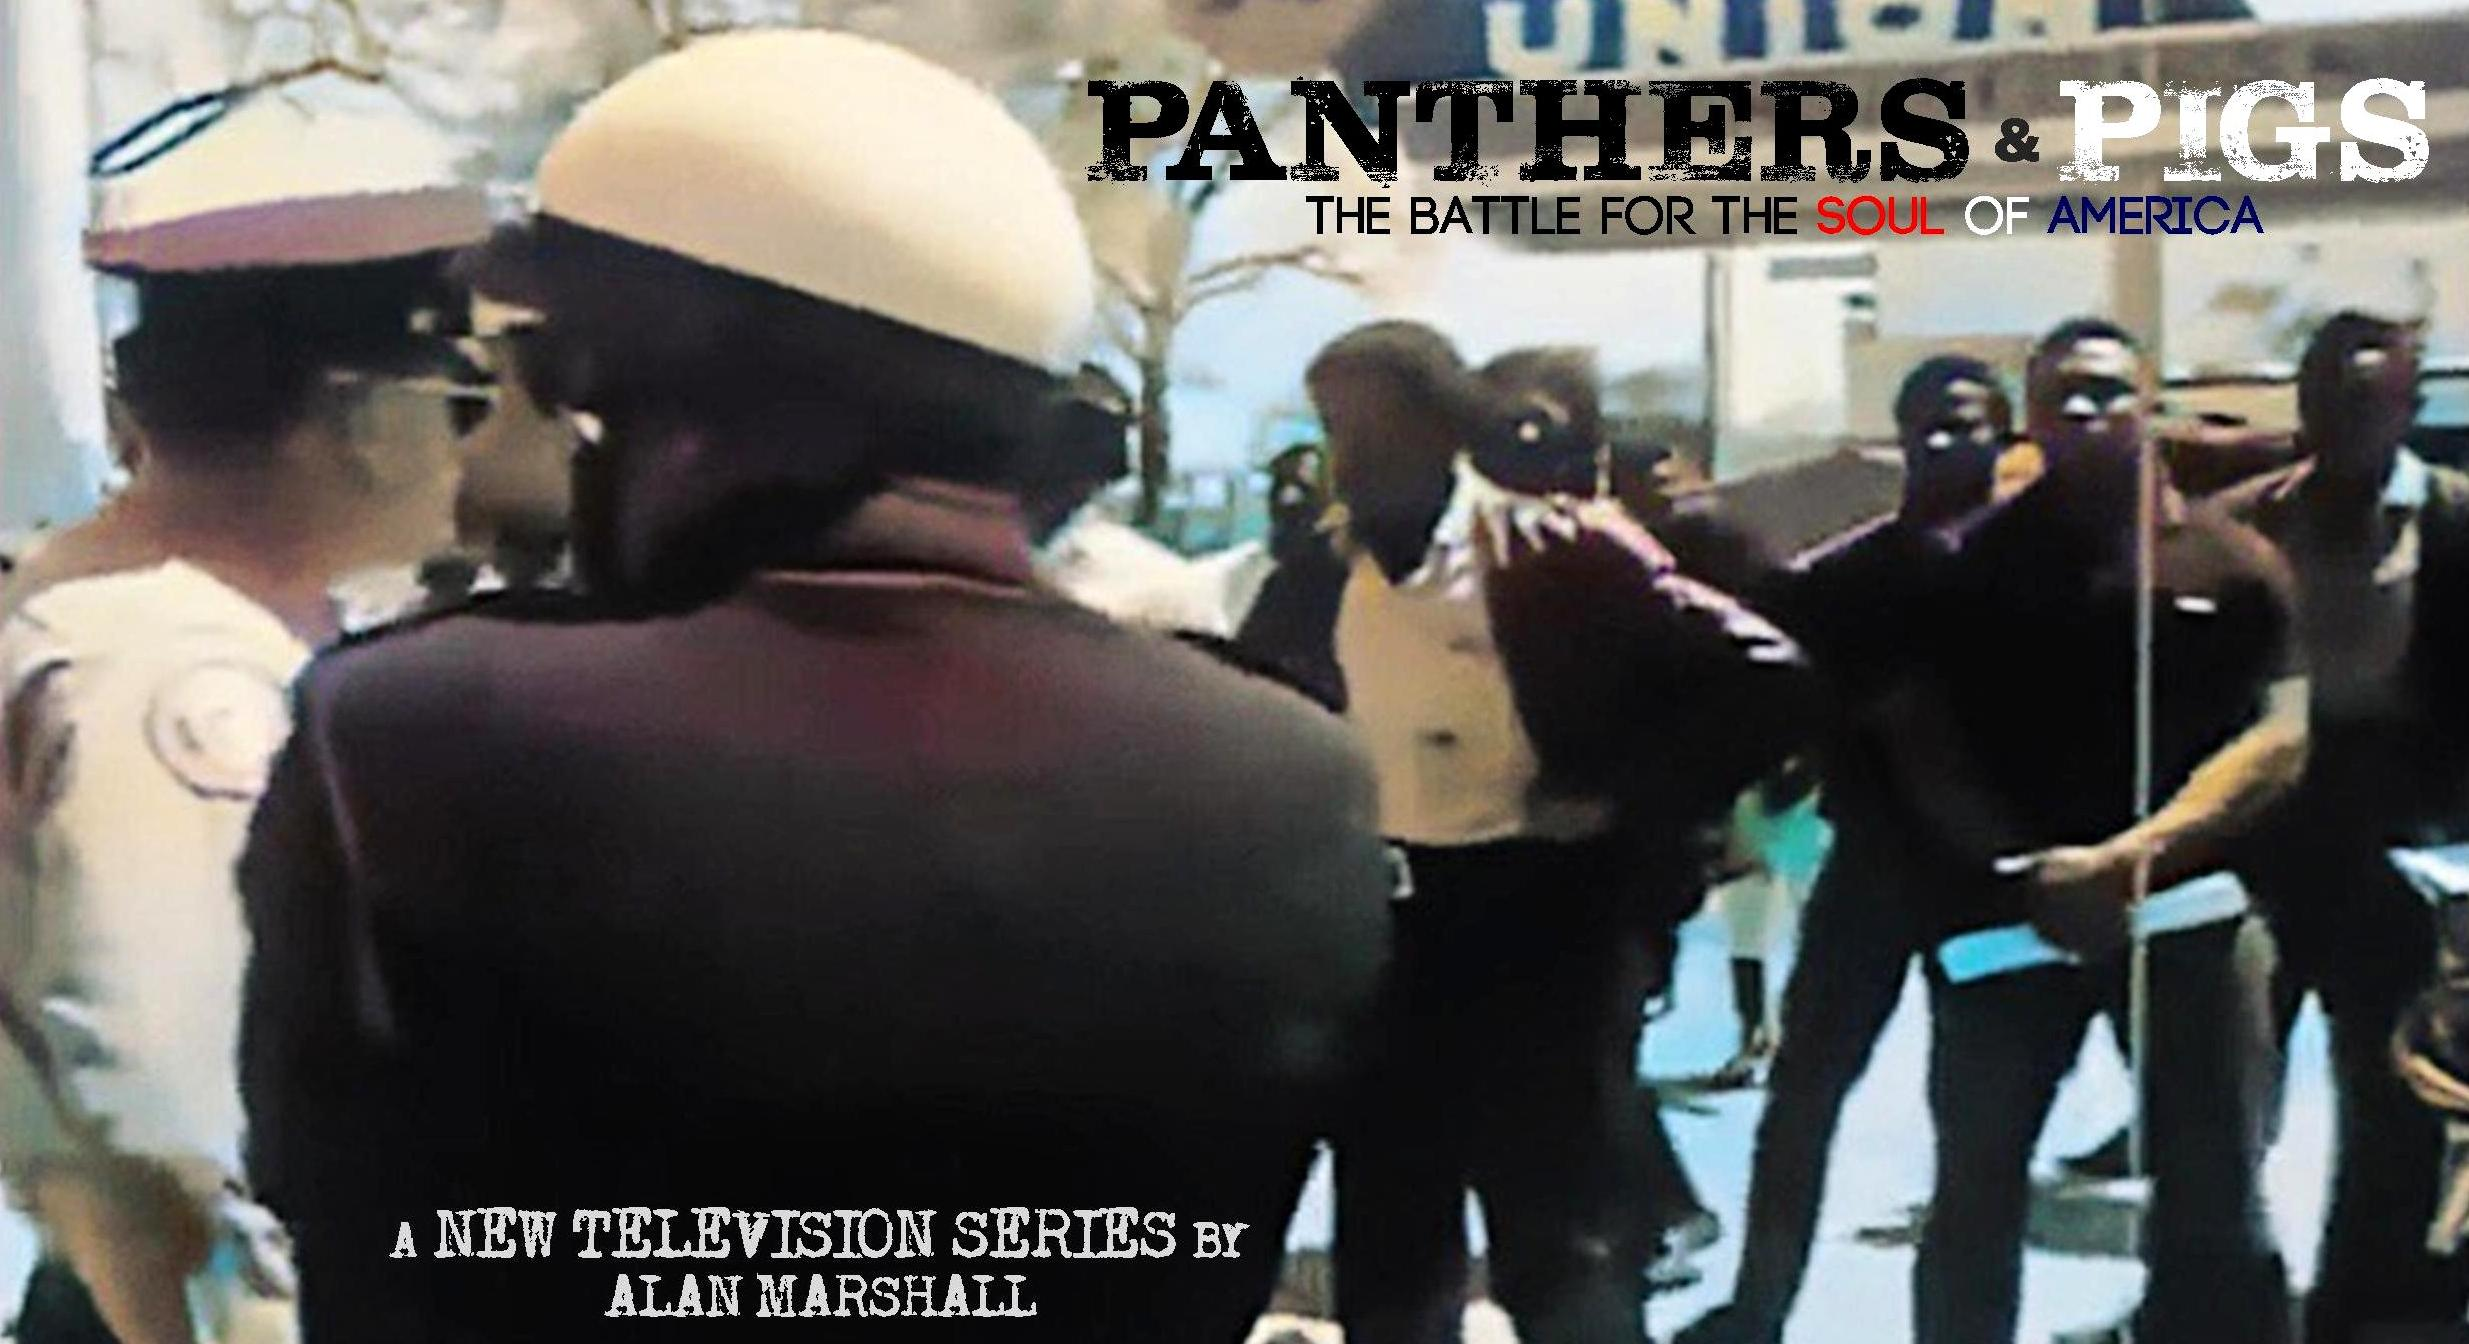 PANTHERS & PIGS: THE BATTLE FOR THE SOUL OF AMERICA – A NEW TELEVISION DRAMA SERIES